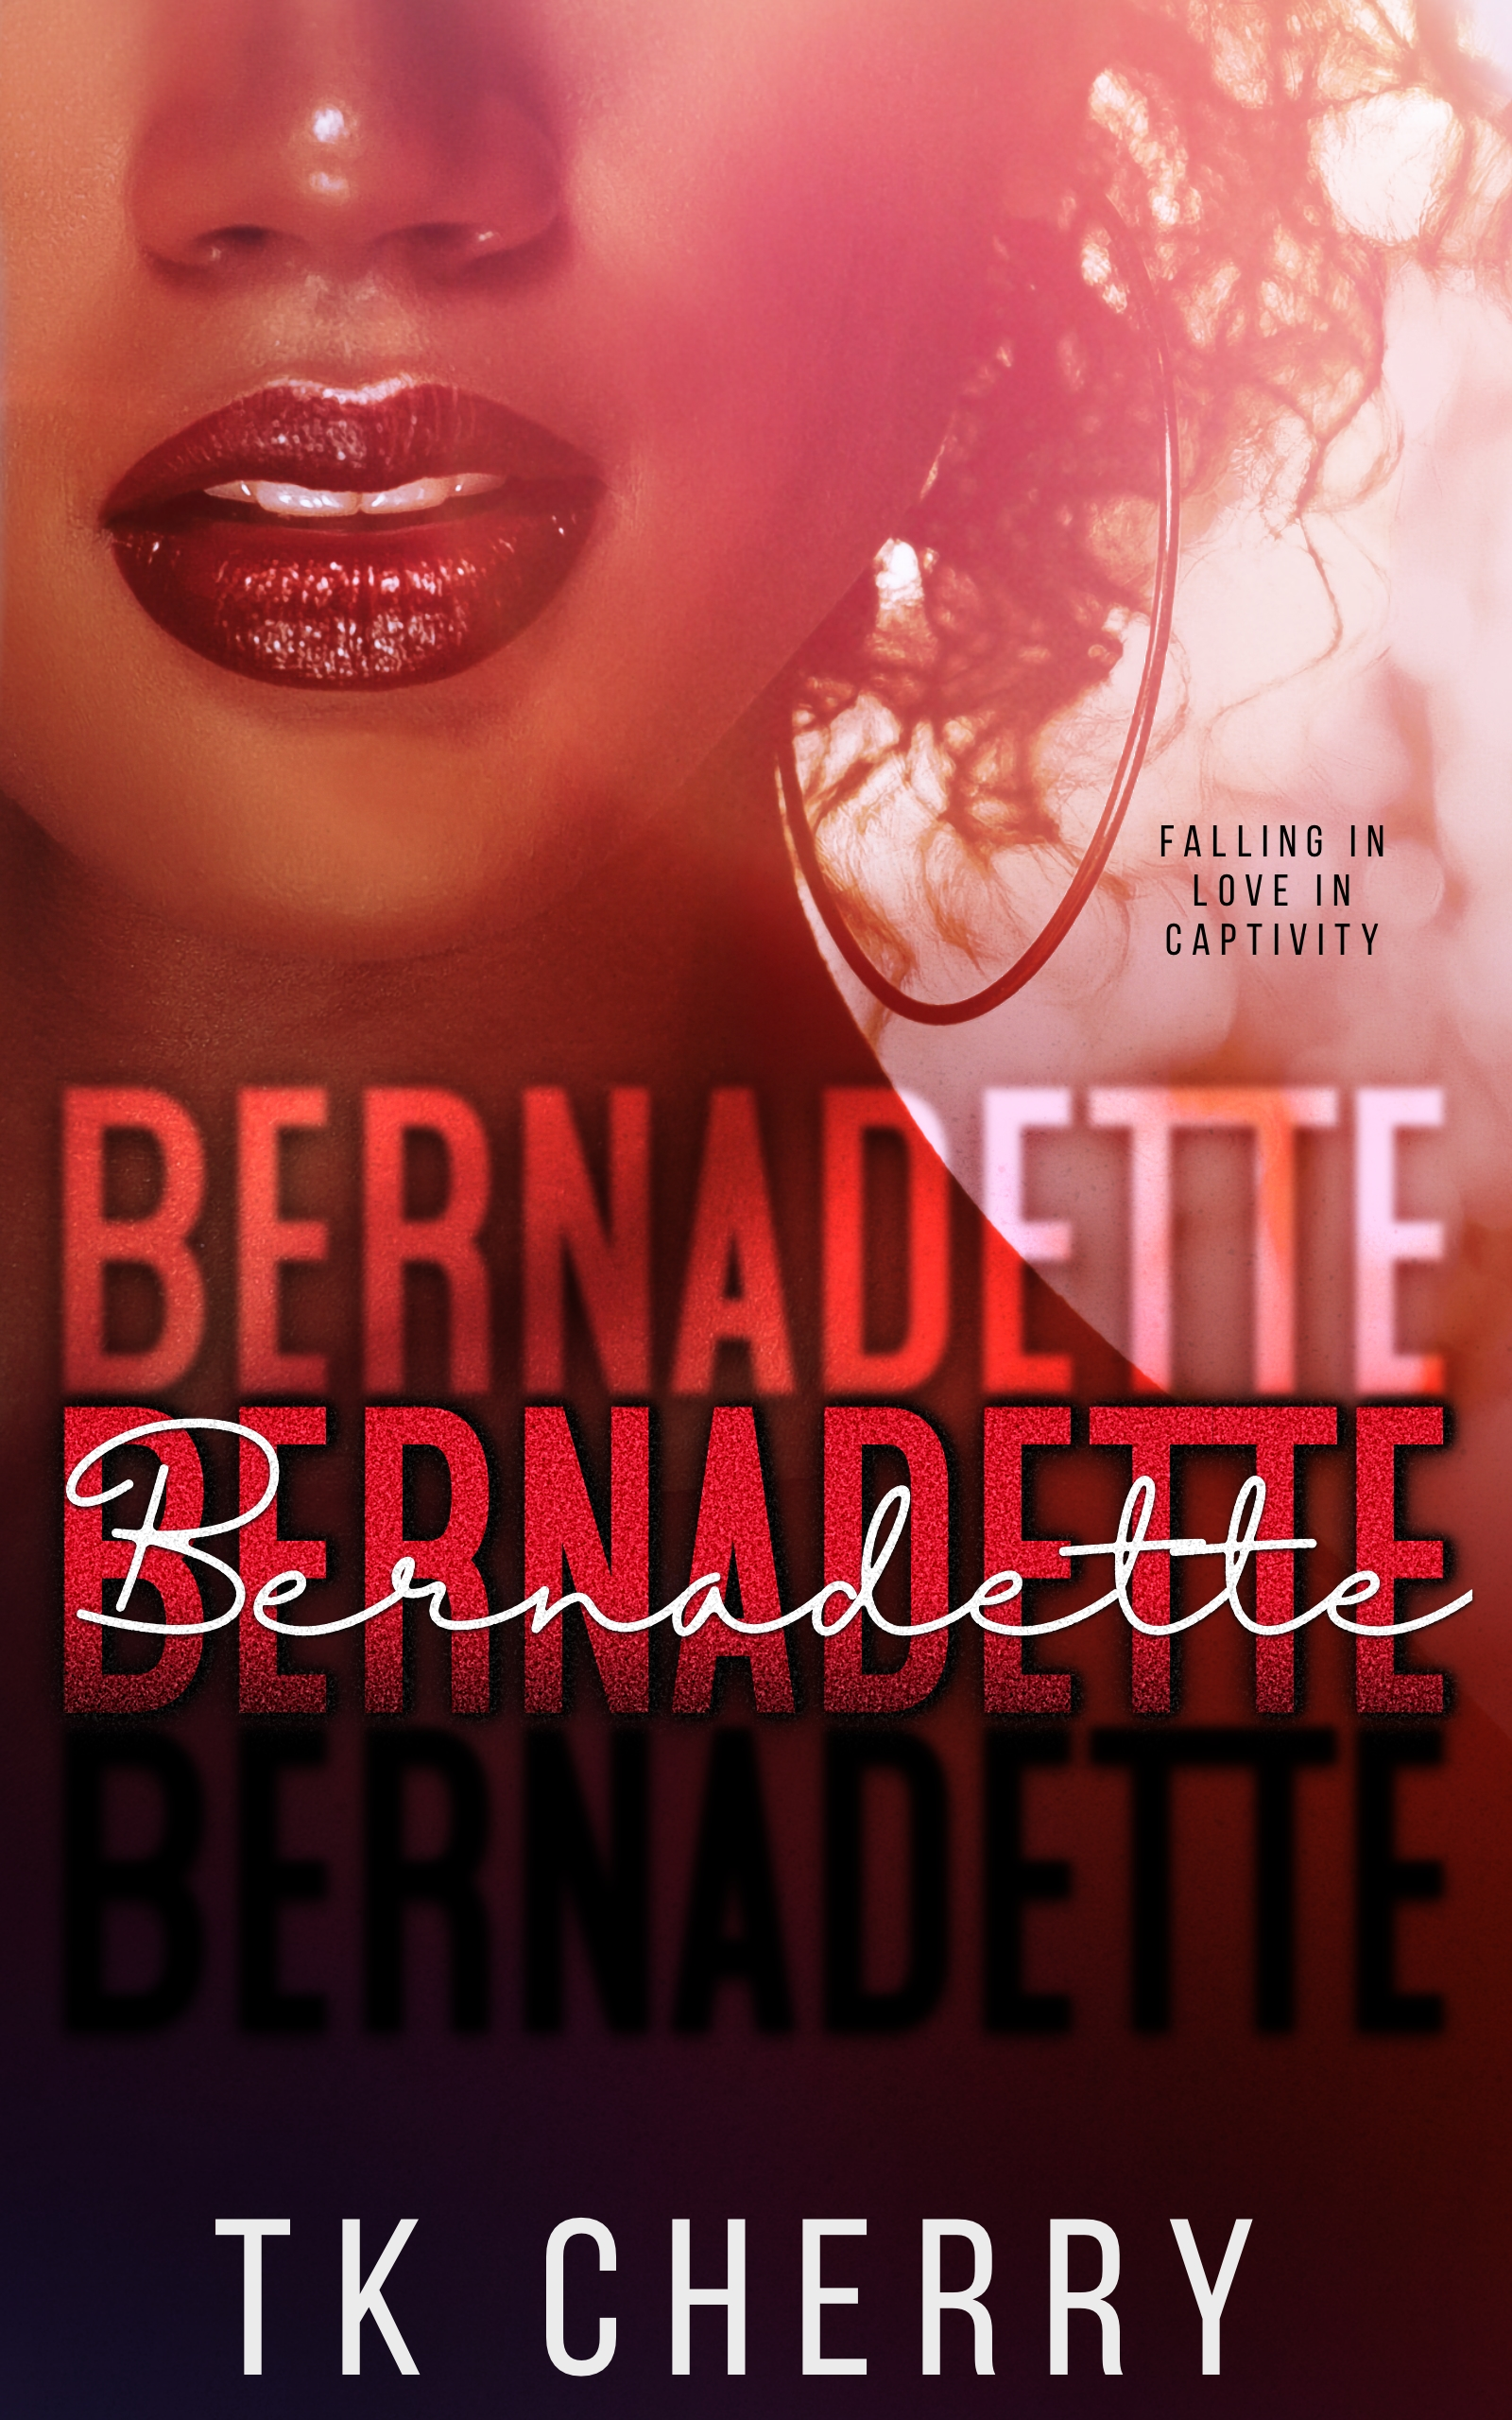 tk-cherry-bernadette-ebook